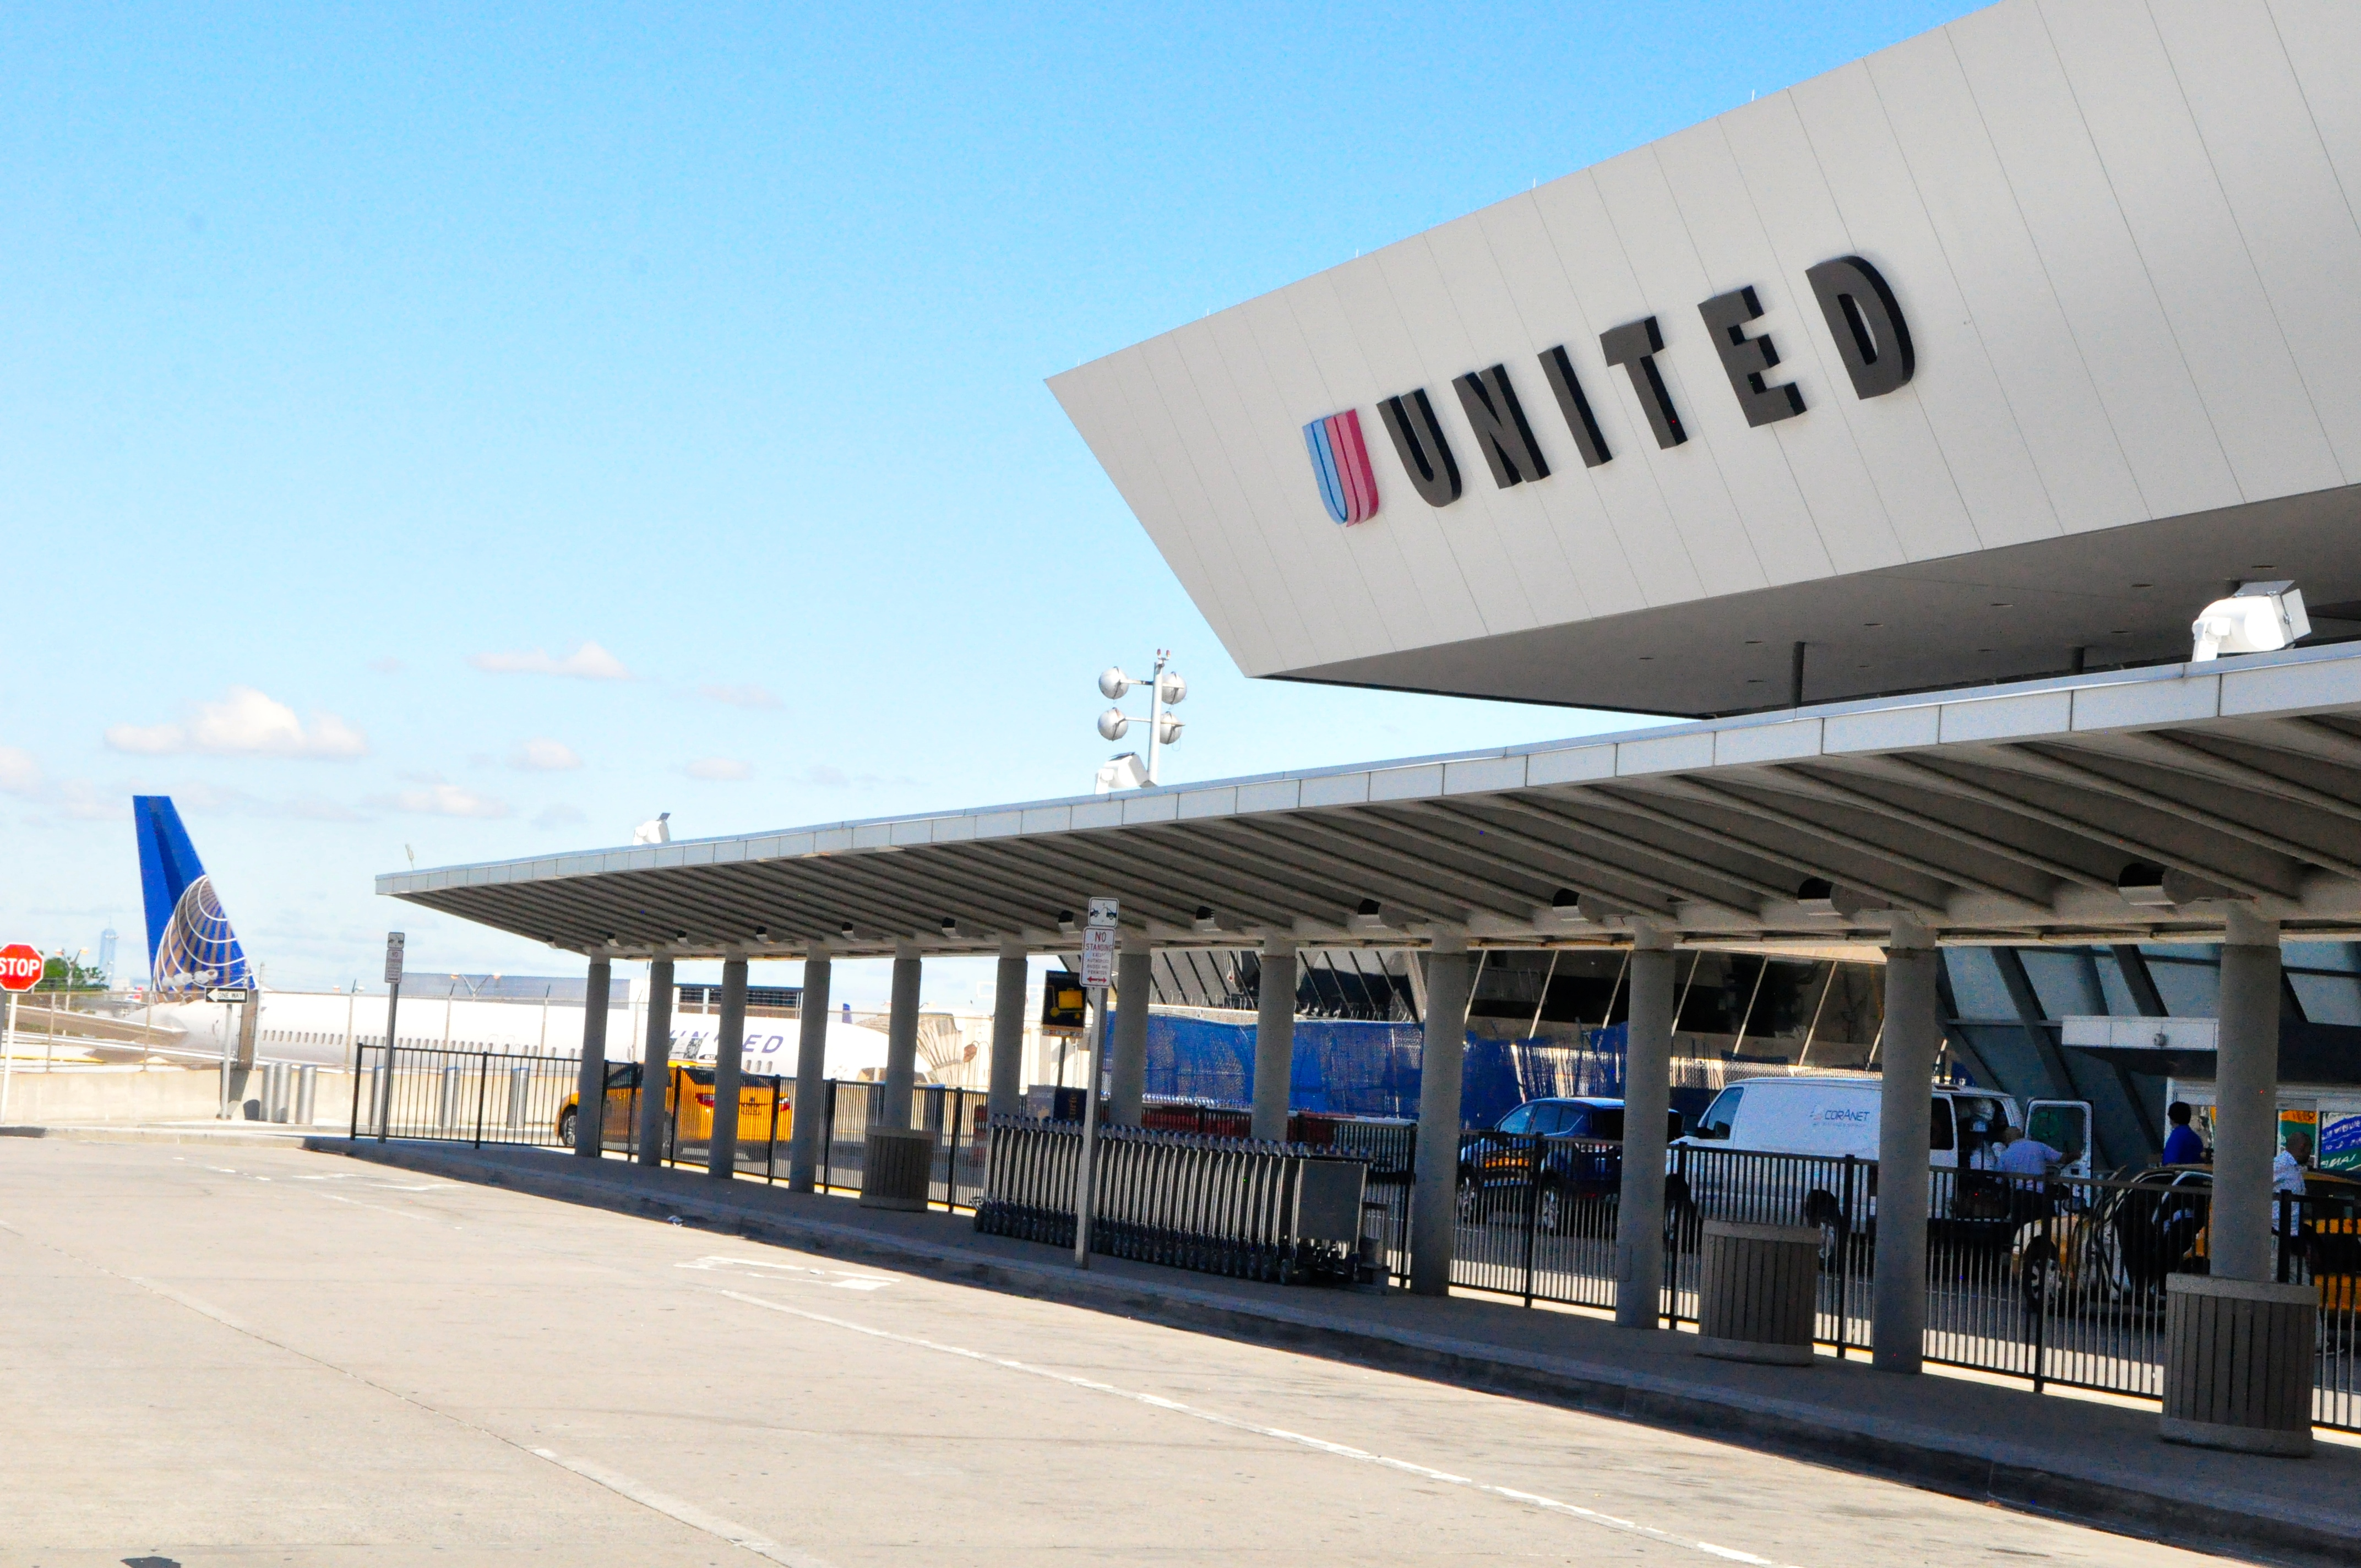 The United name will soon disappear from JFK